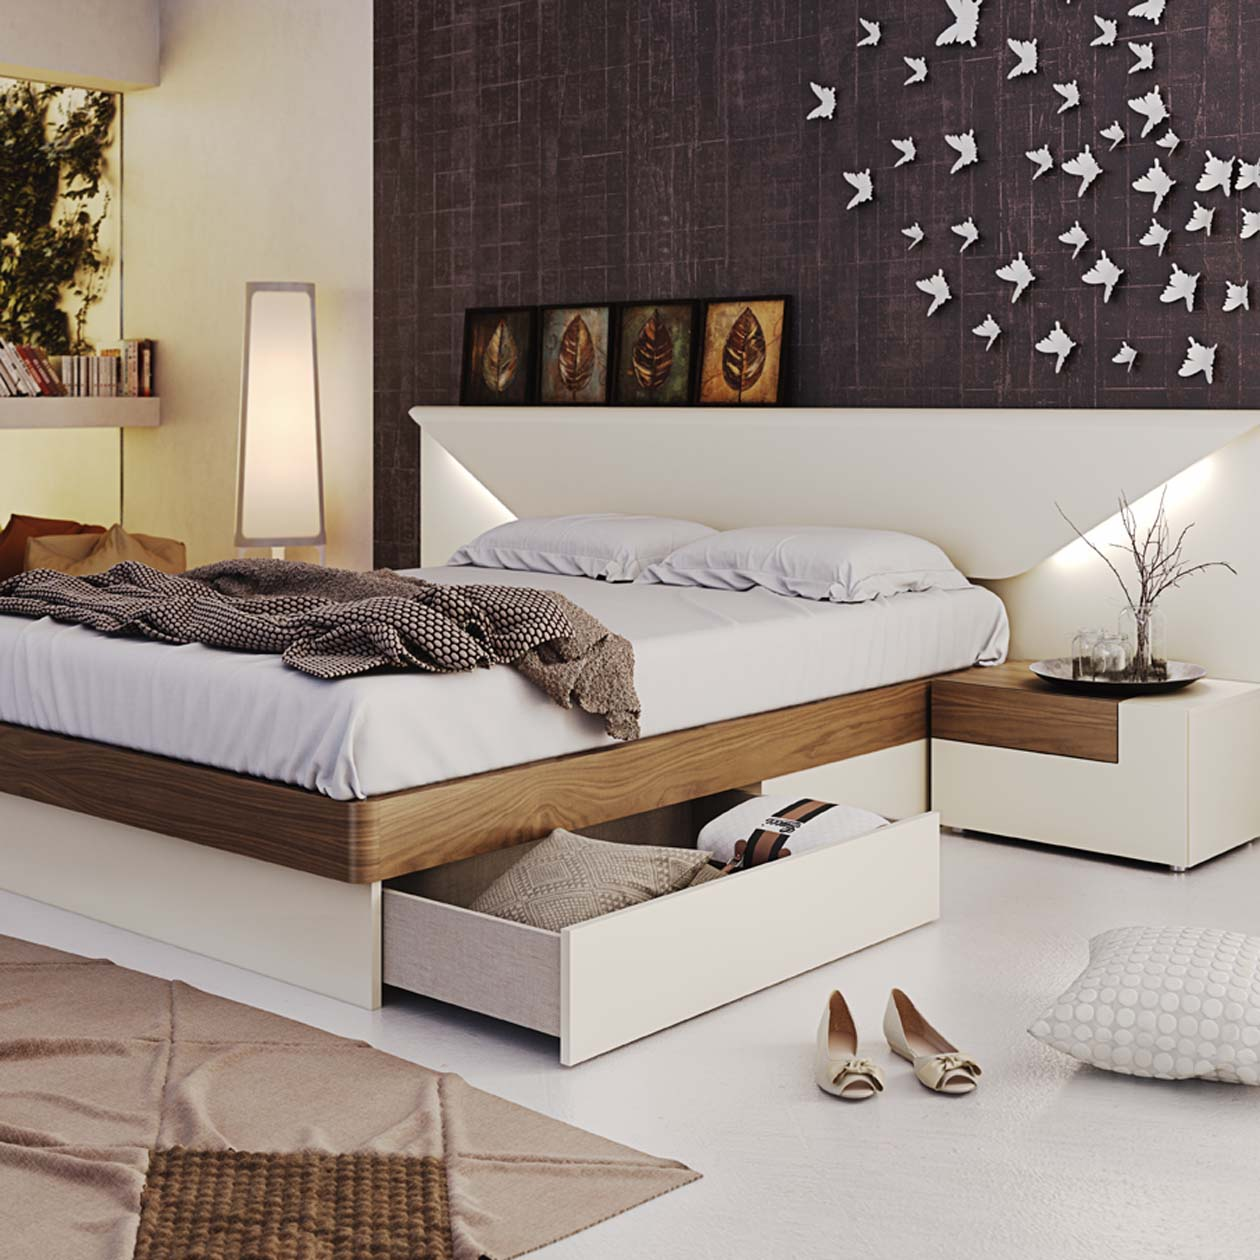 Contemporary Furniture Bed: Storage Beds With Drawers Or Hydraulic Lift Storage